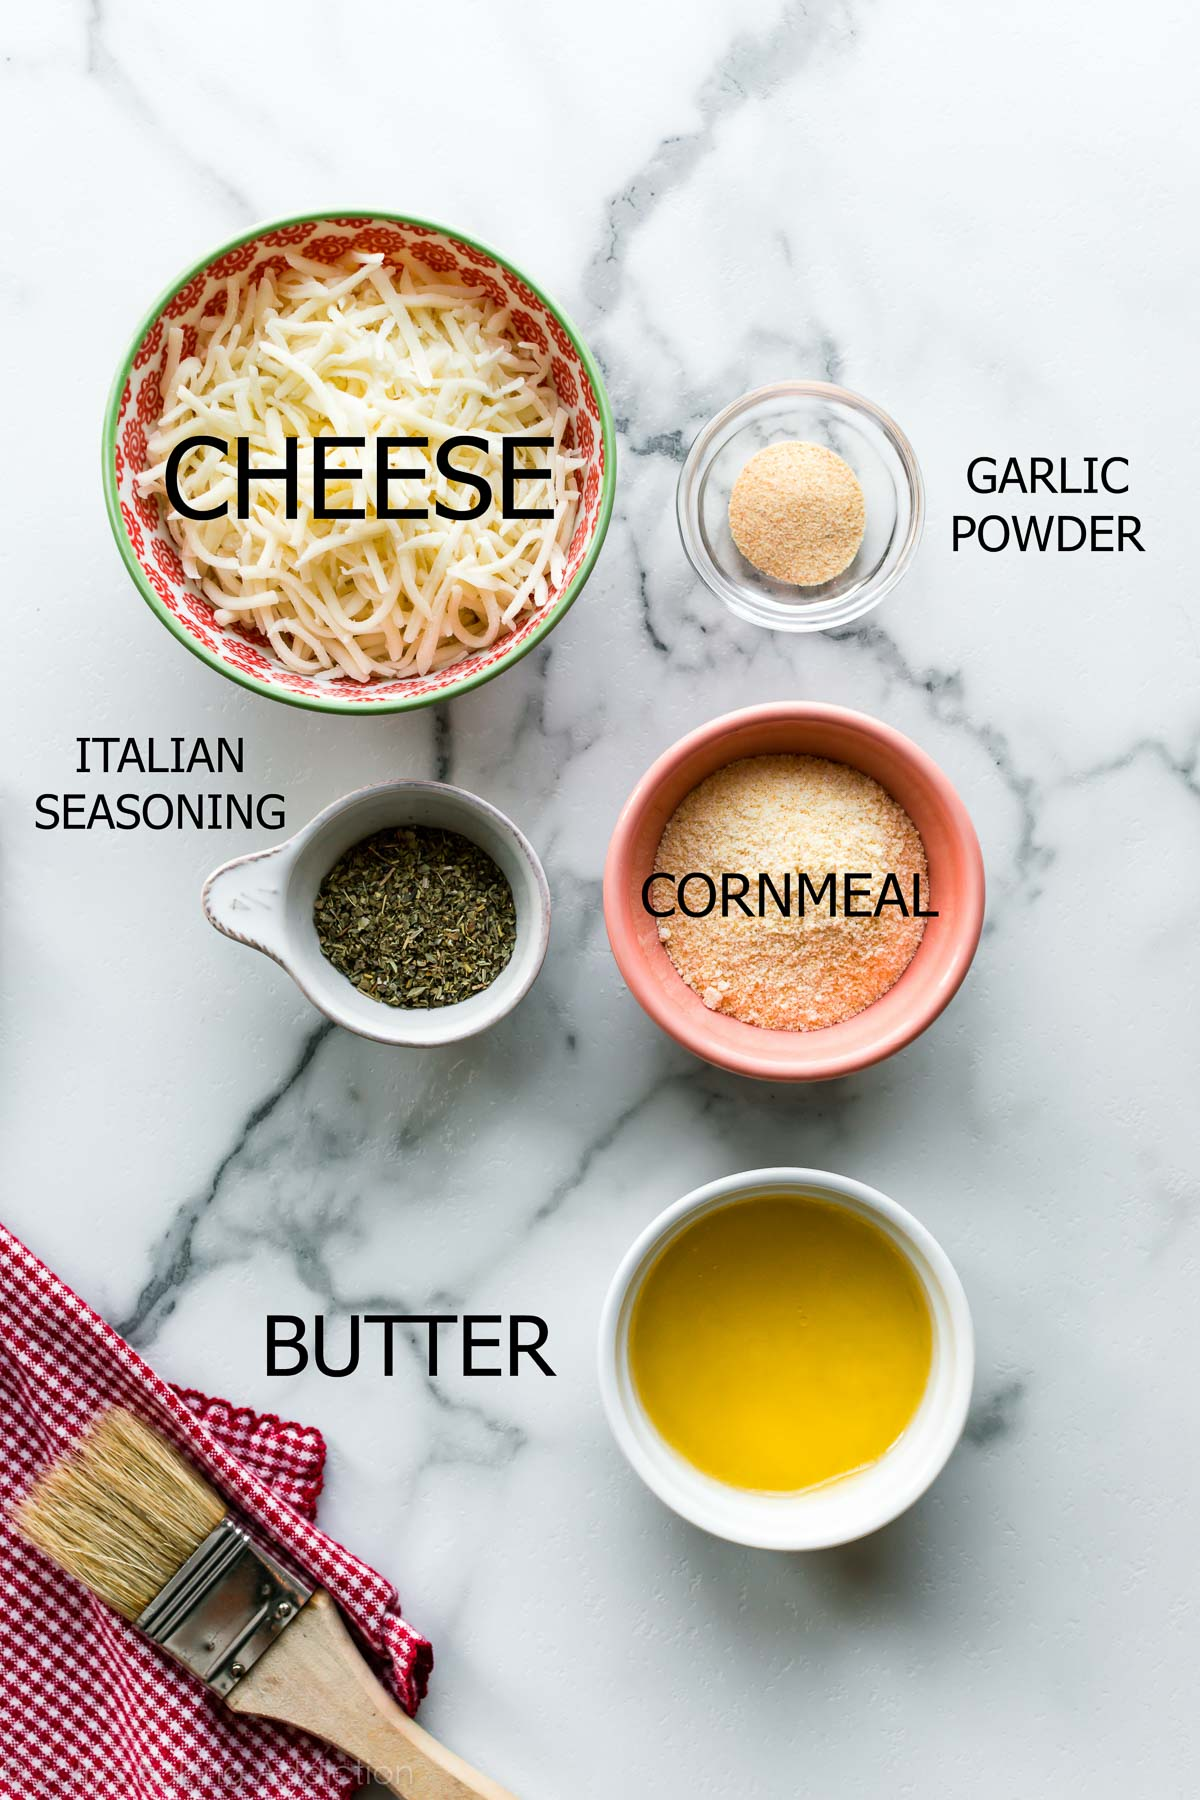 Ingredients in cheesy bread